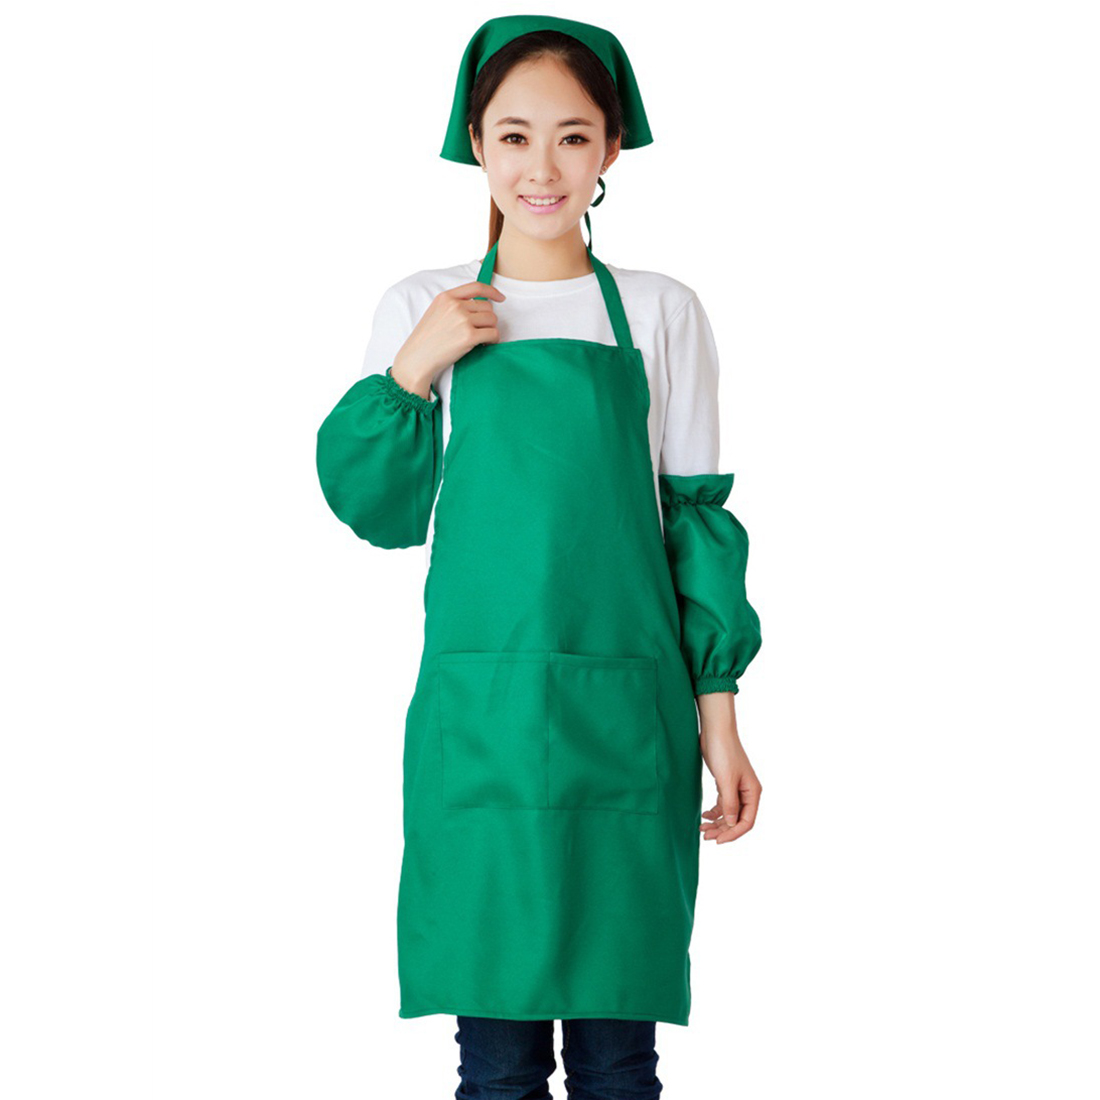 Woman Hotel Coffee Fruit Shop Dress Pocket Apron Bib Green w Sleeve Headscarf